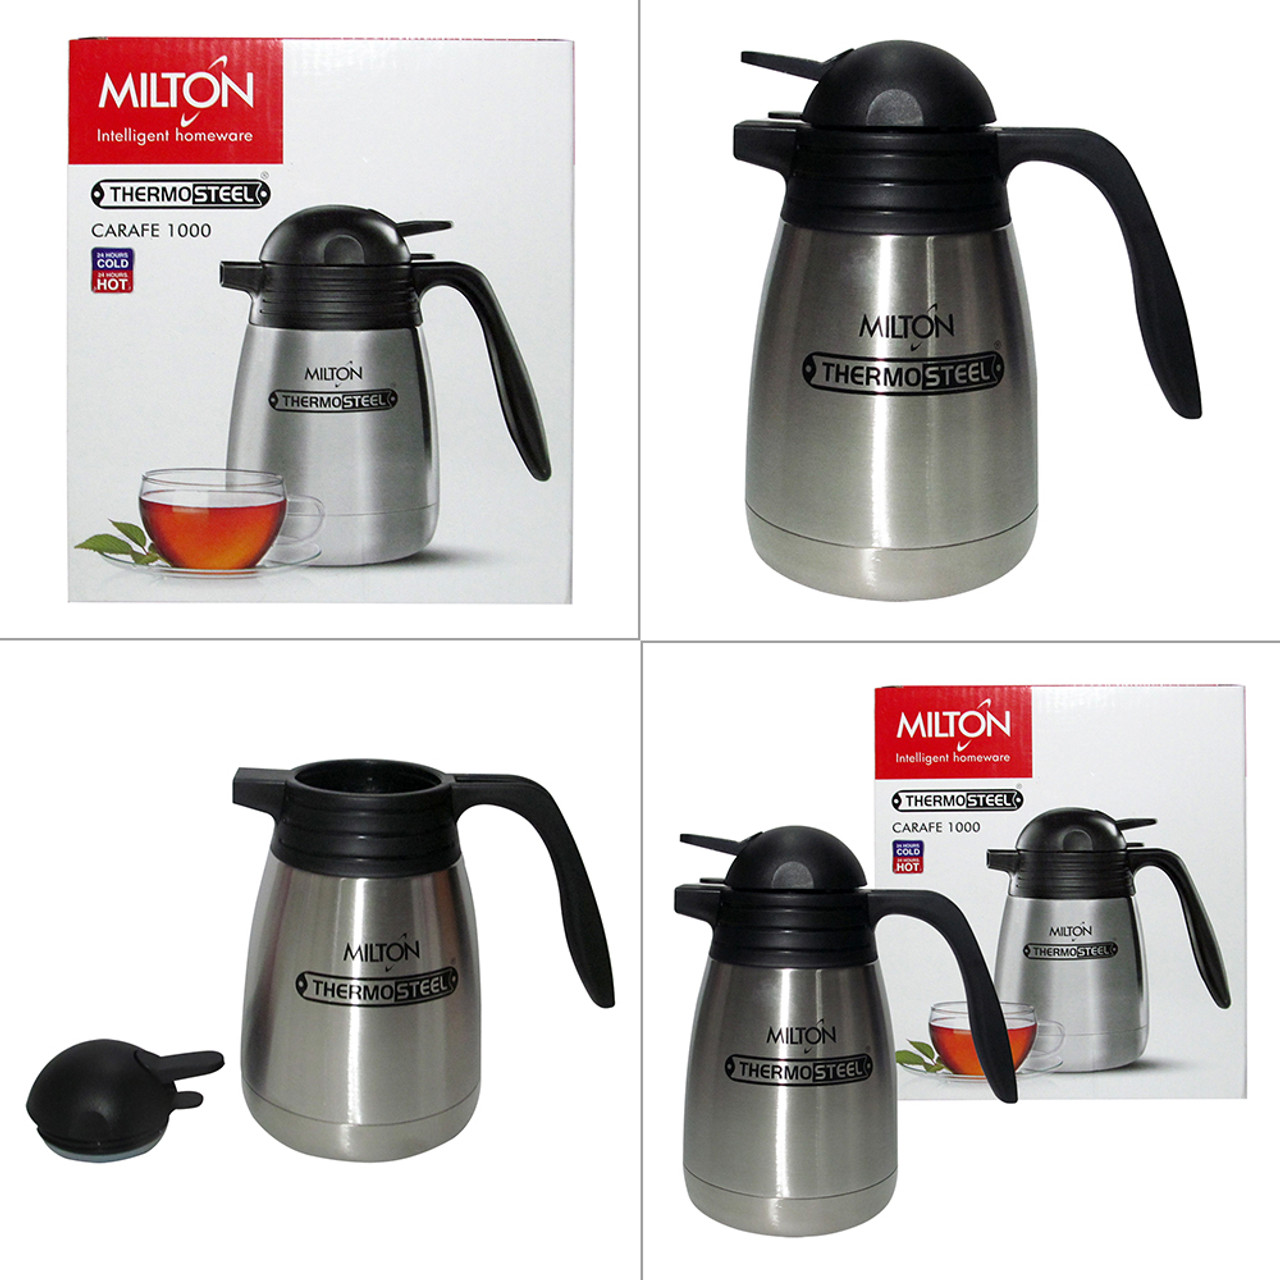 Milton Thermosteel Carafe, 1000 ML Vacuum Insulated Hot And Cold Flask - Image 6